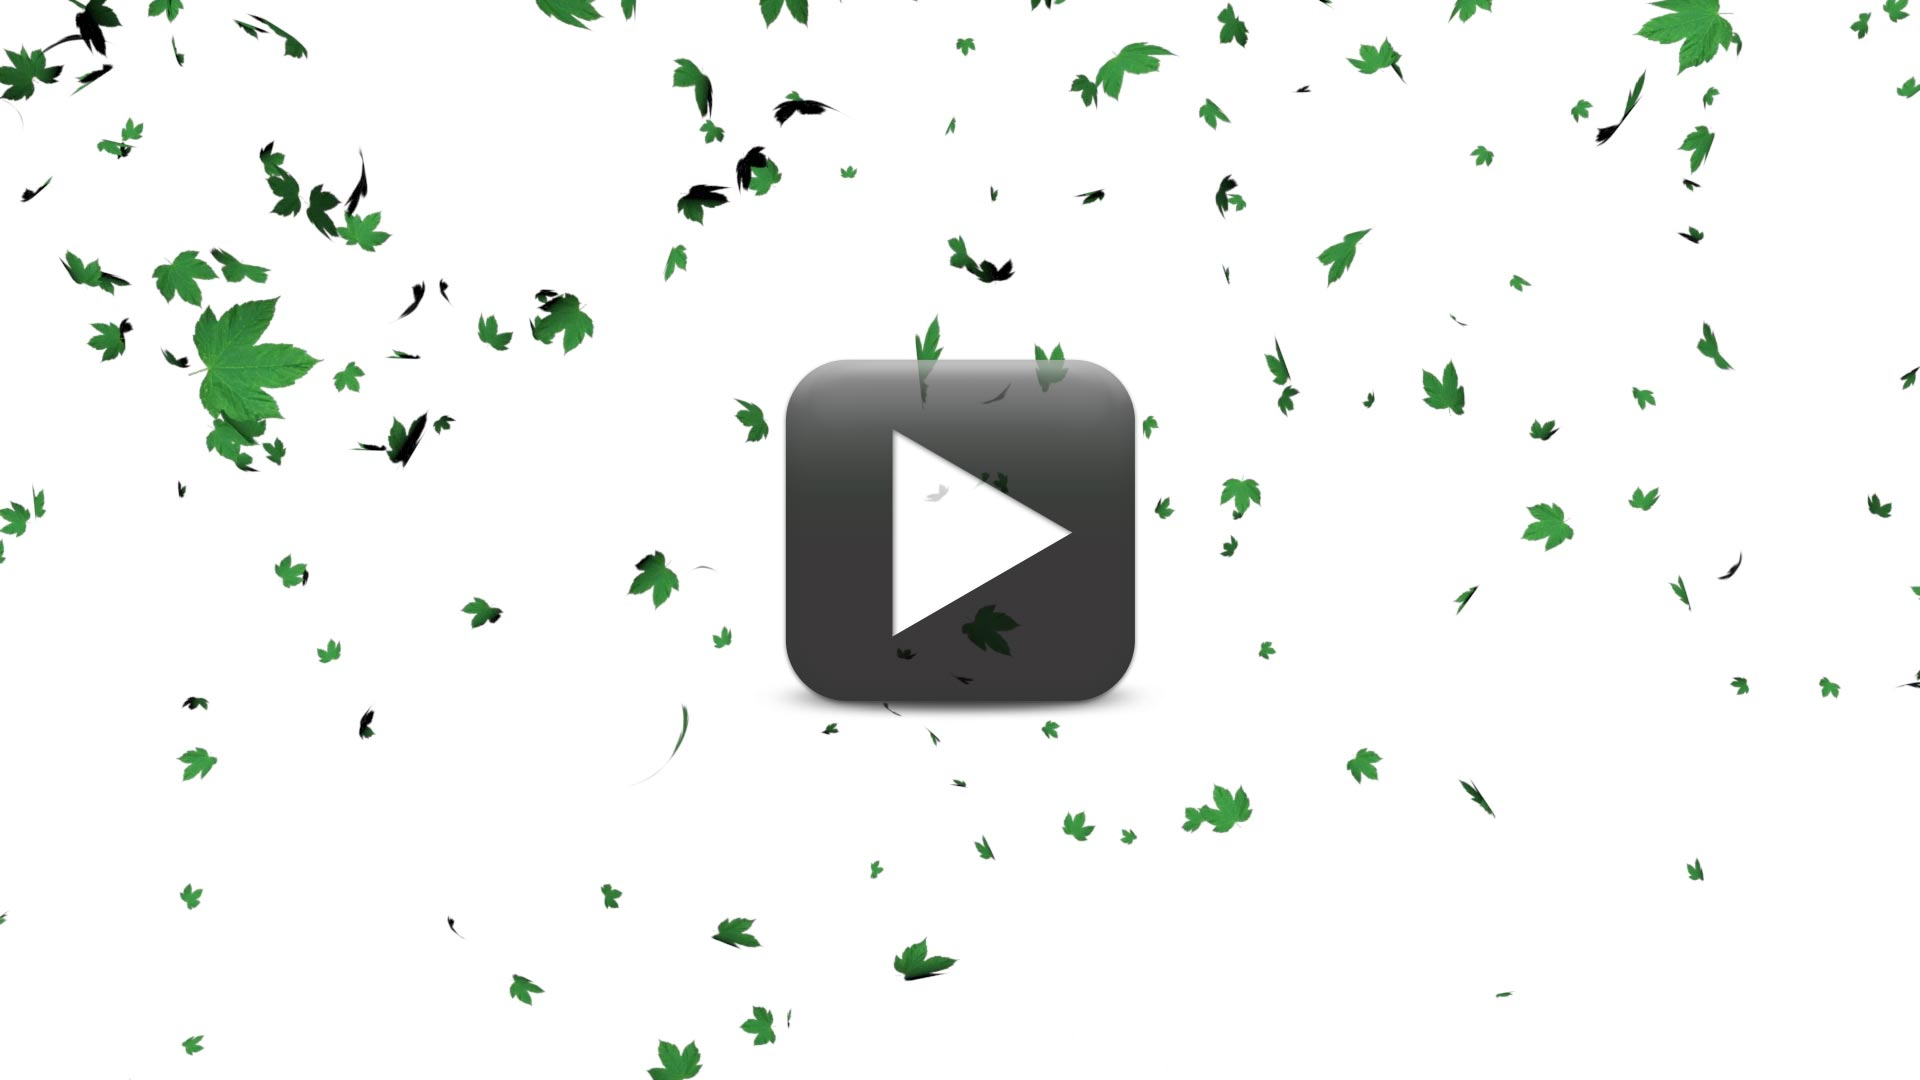 Best Leaves Falling Animation-White Screen Background Effect